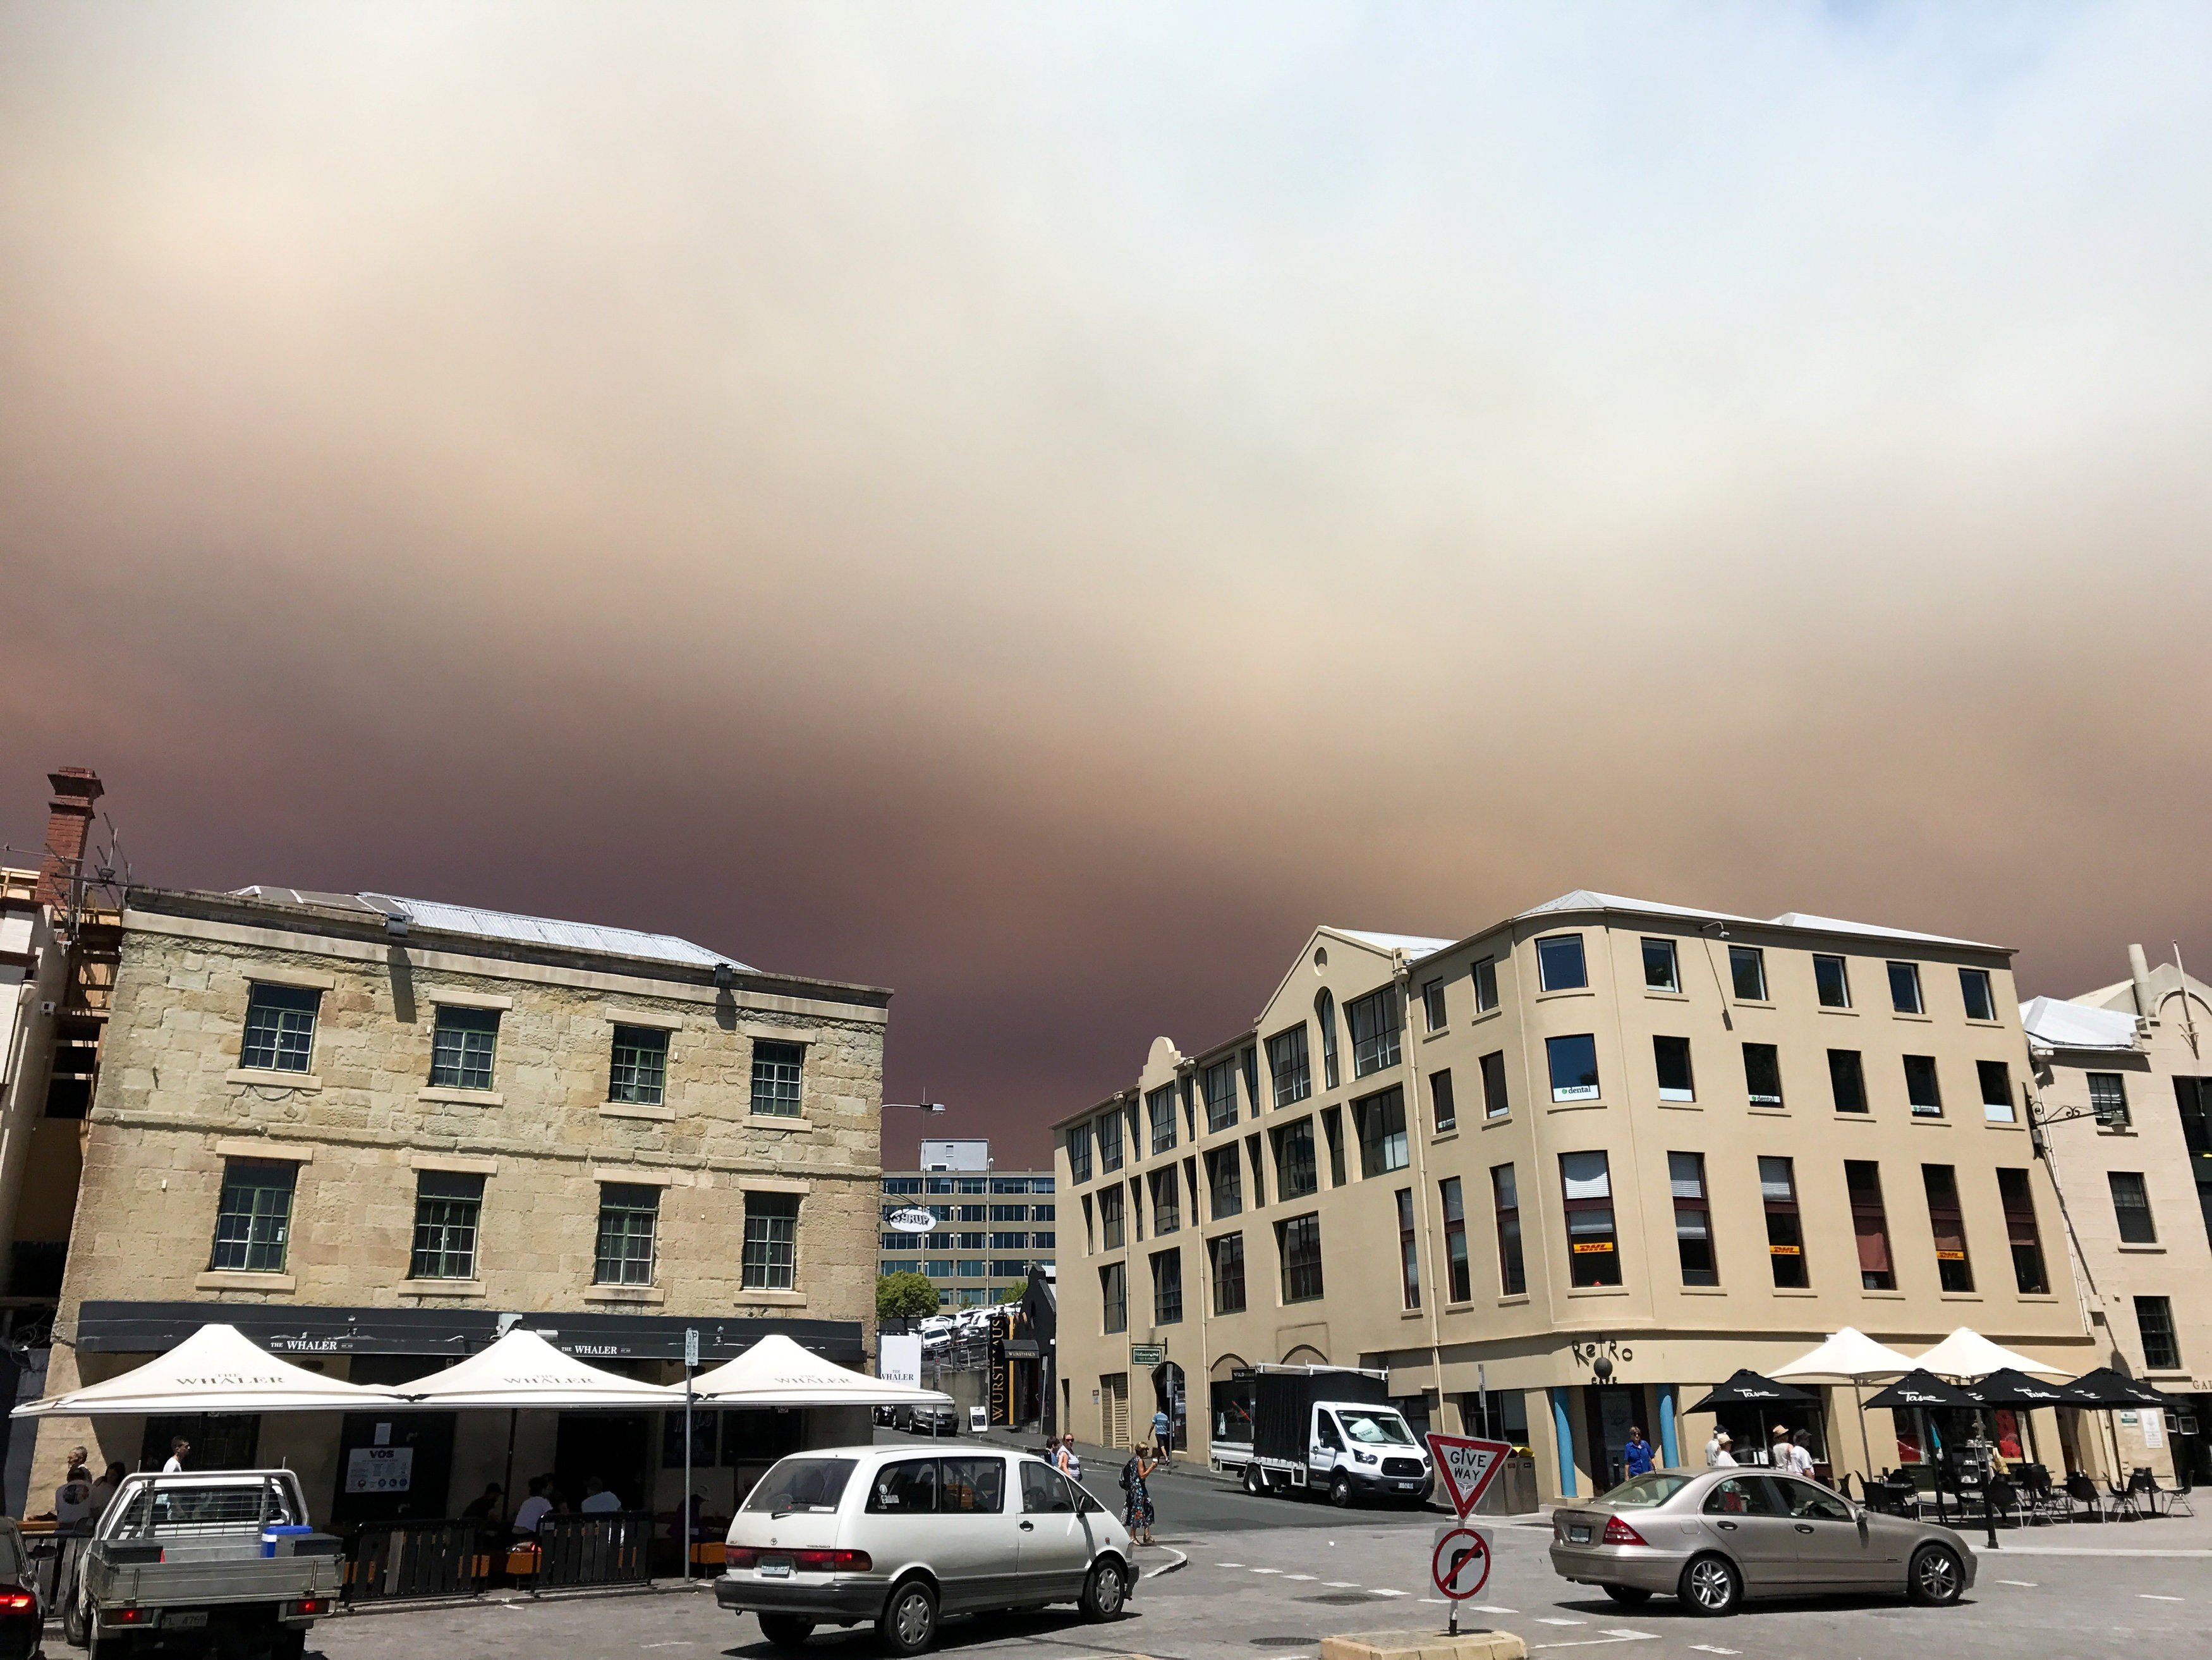 Bush fires rage in two Australia states as summer temperatures soar